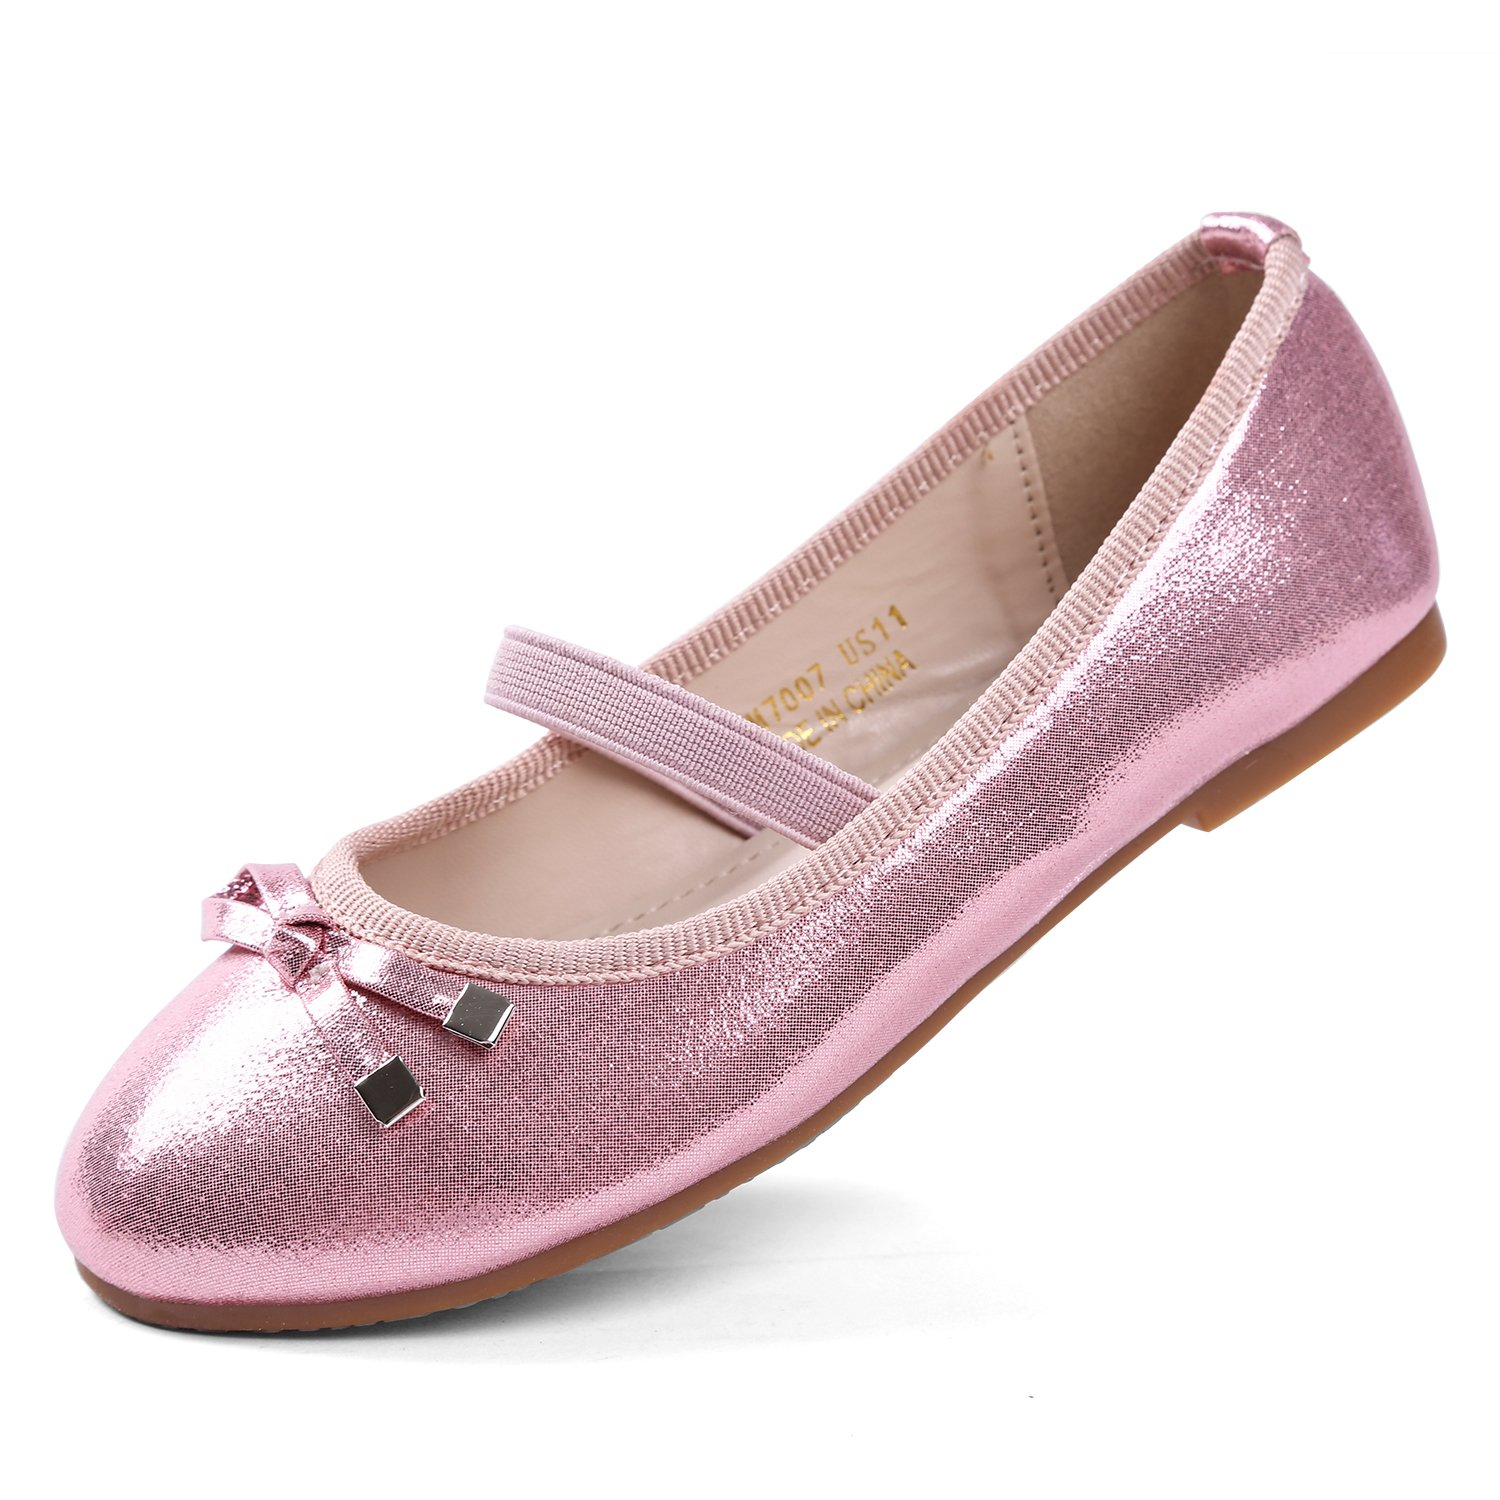 EIGHT KM EKM701 Toddler & Girl's Ballet Flats Mary Janes Dress Shoes B07BFC4V1M 10.5 US Little Kid|Ekm7007-pink